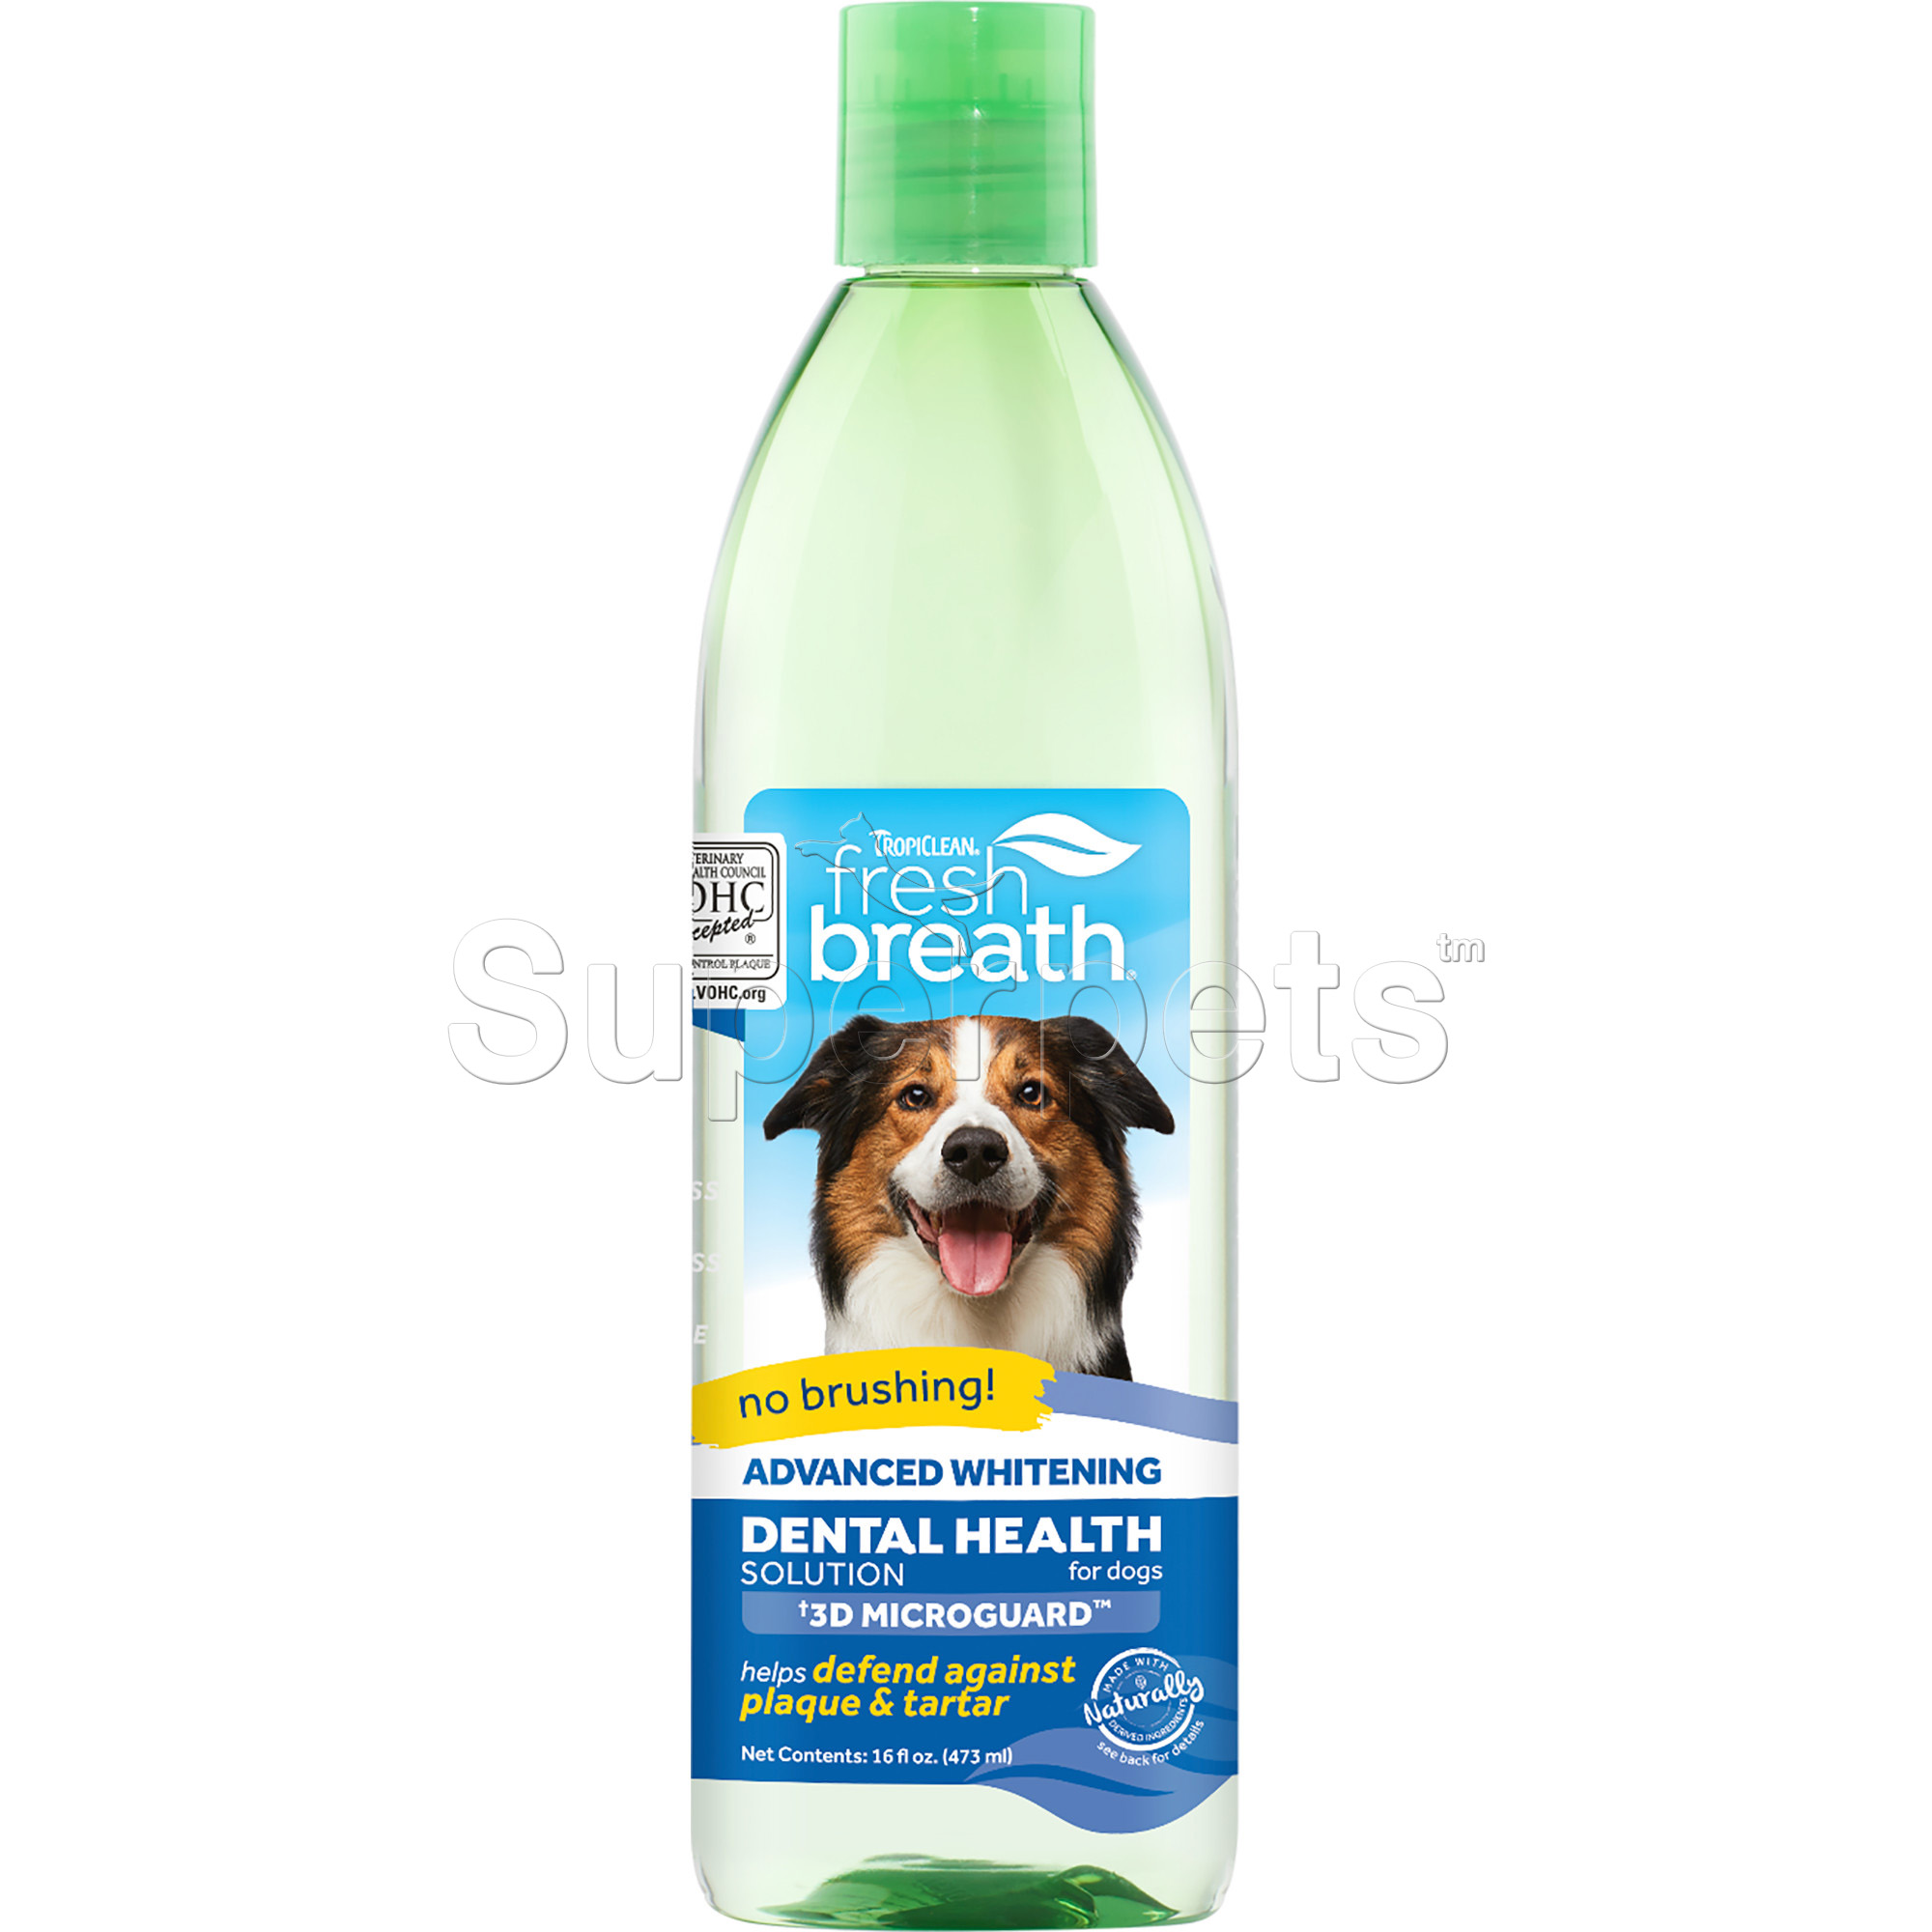 Tropiclean FRESH BREATH Oral Care Water Additive for Dogs - Advanced Whitening 16oz (473ml)